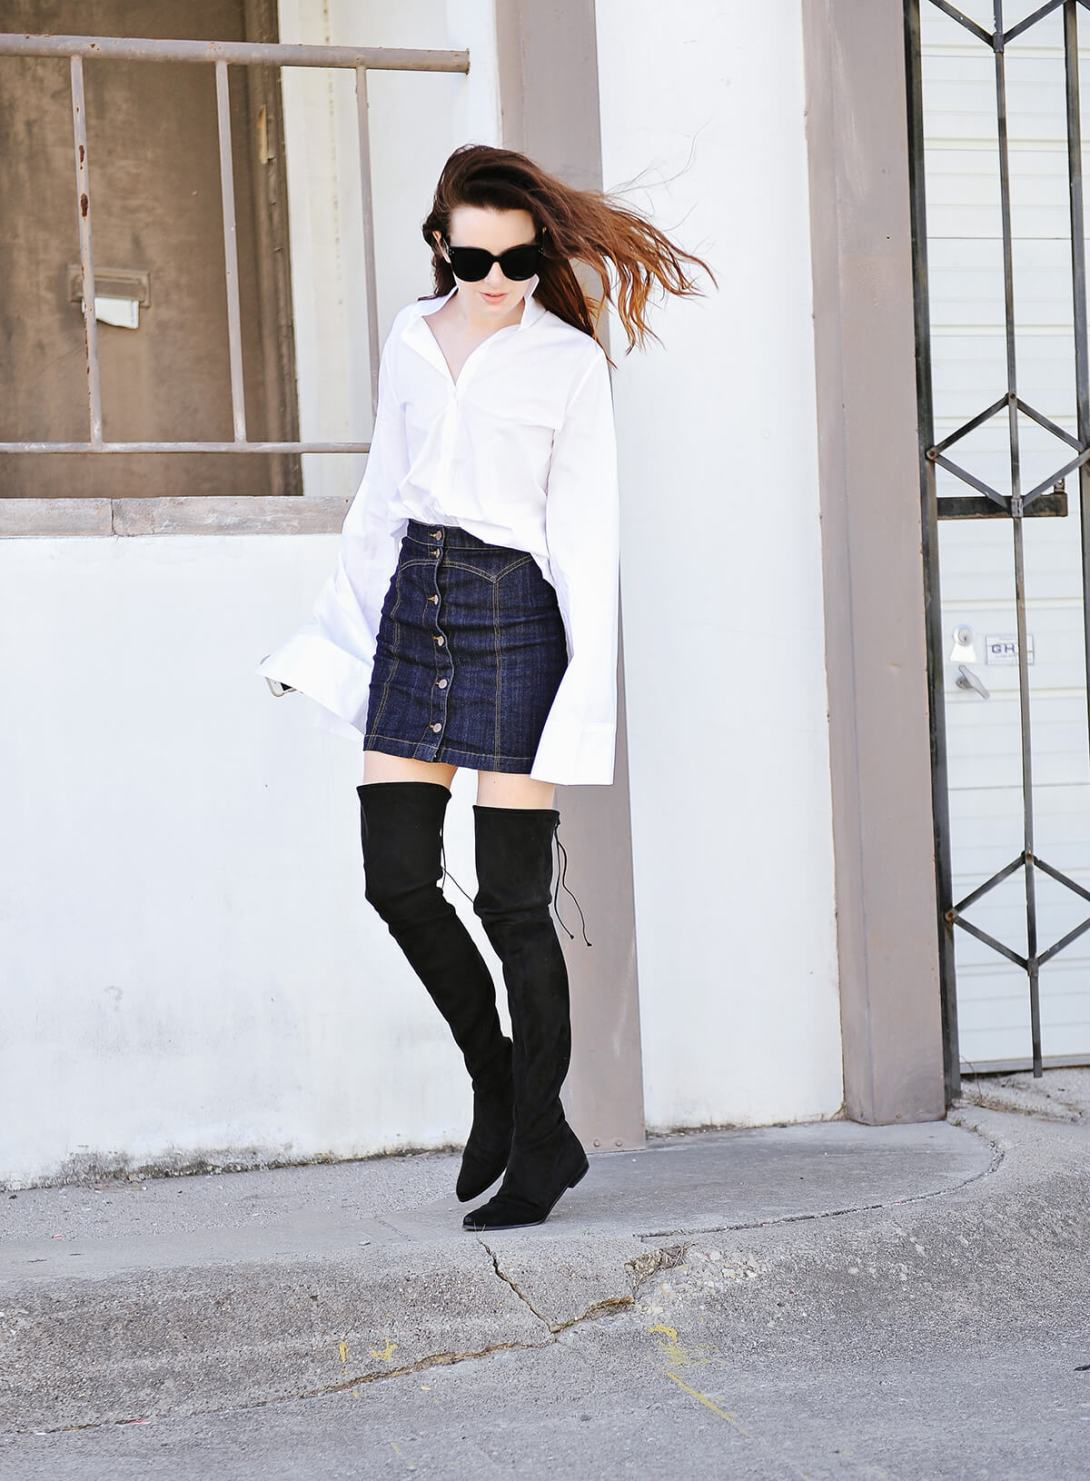 over the knee at seaofshoes.com